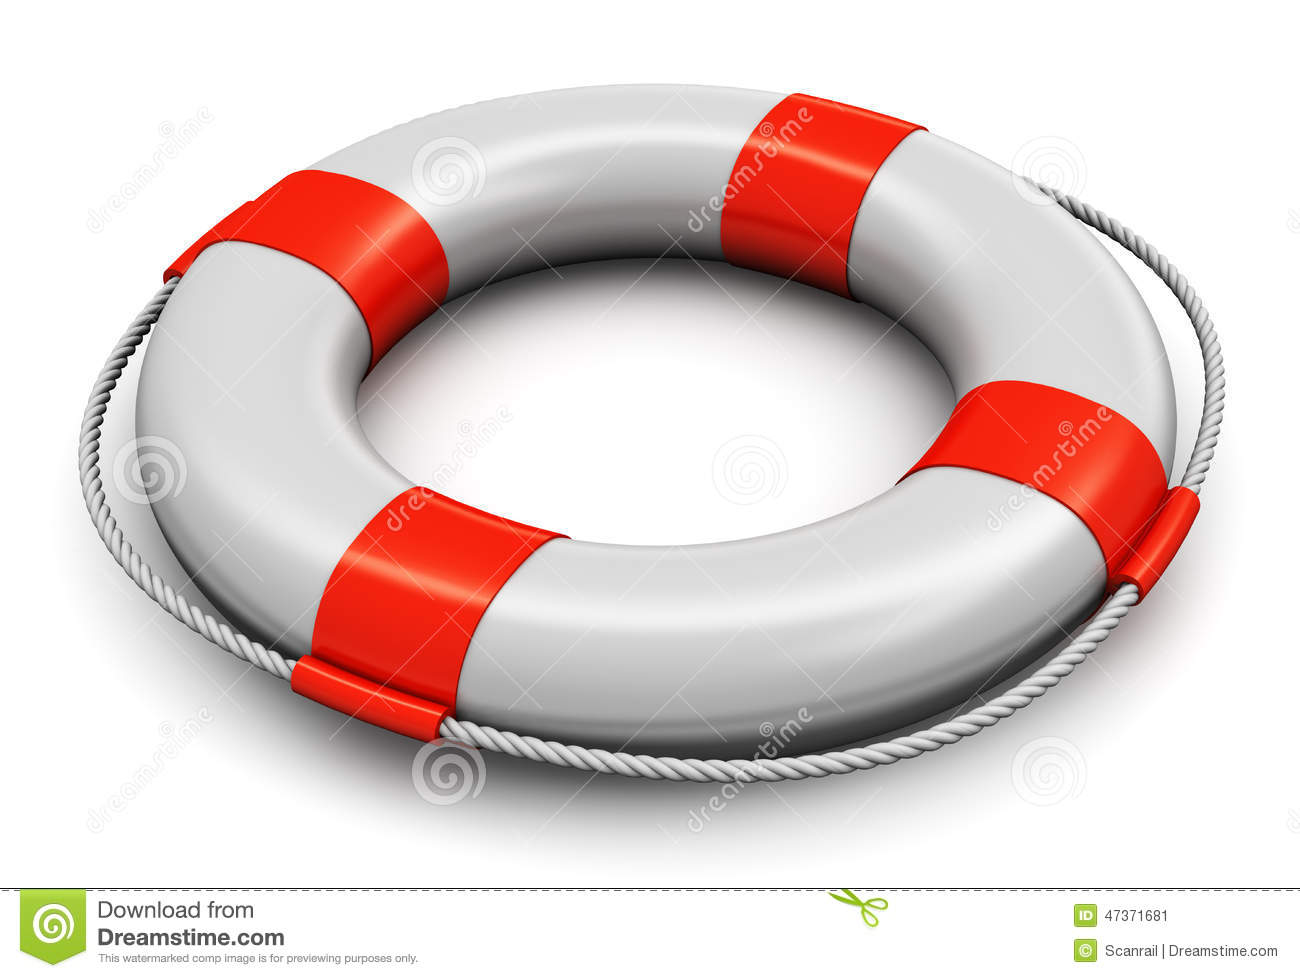 A Red Lifesaver Royalty-Free Stock Image